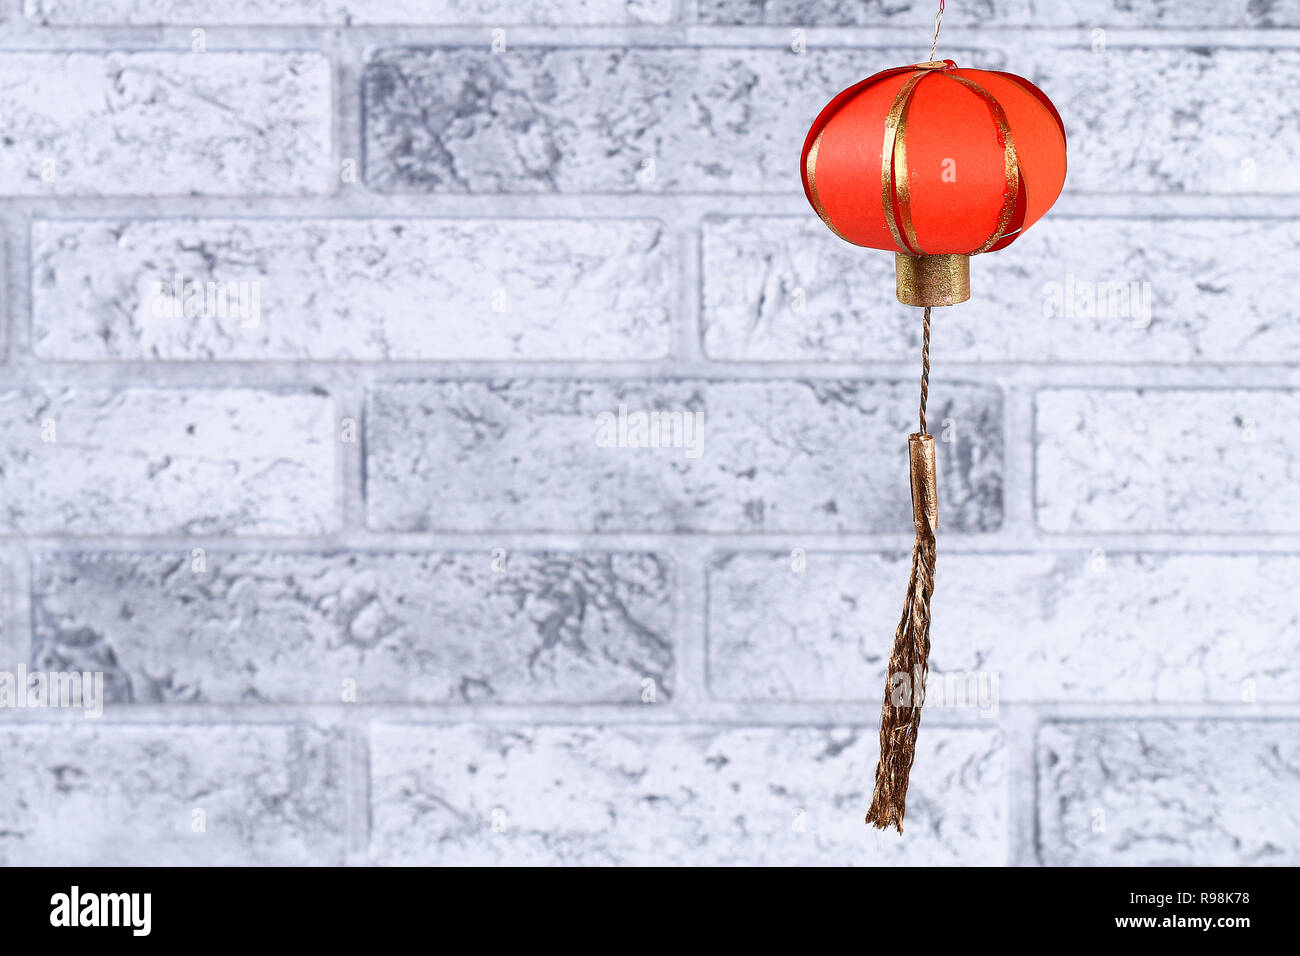 Red Gold Handmade Diy Chinese Lanterns Against A Gray Brick Wall Gift Ideas Decor Concept For The Chinese New Year Sky Lantern Stock Photo Alamy